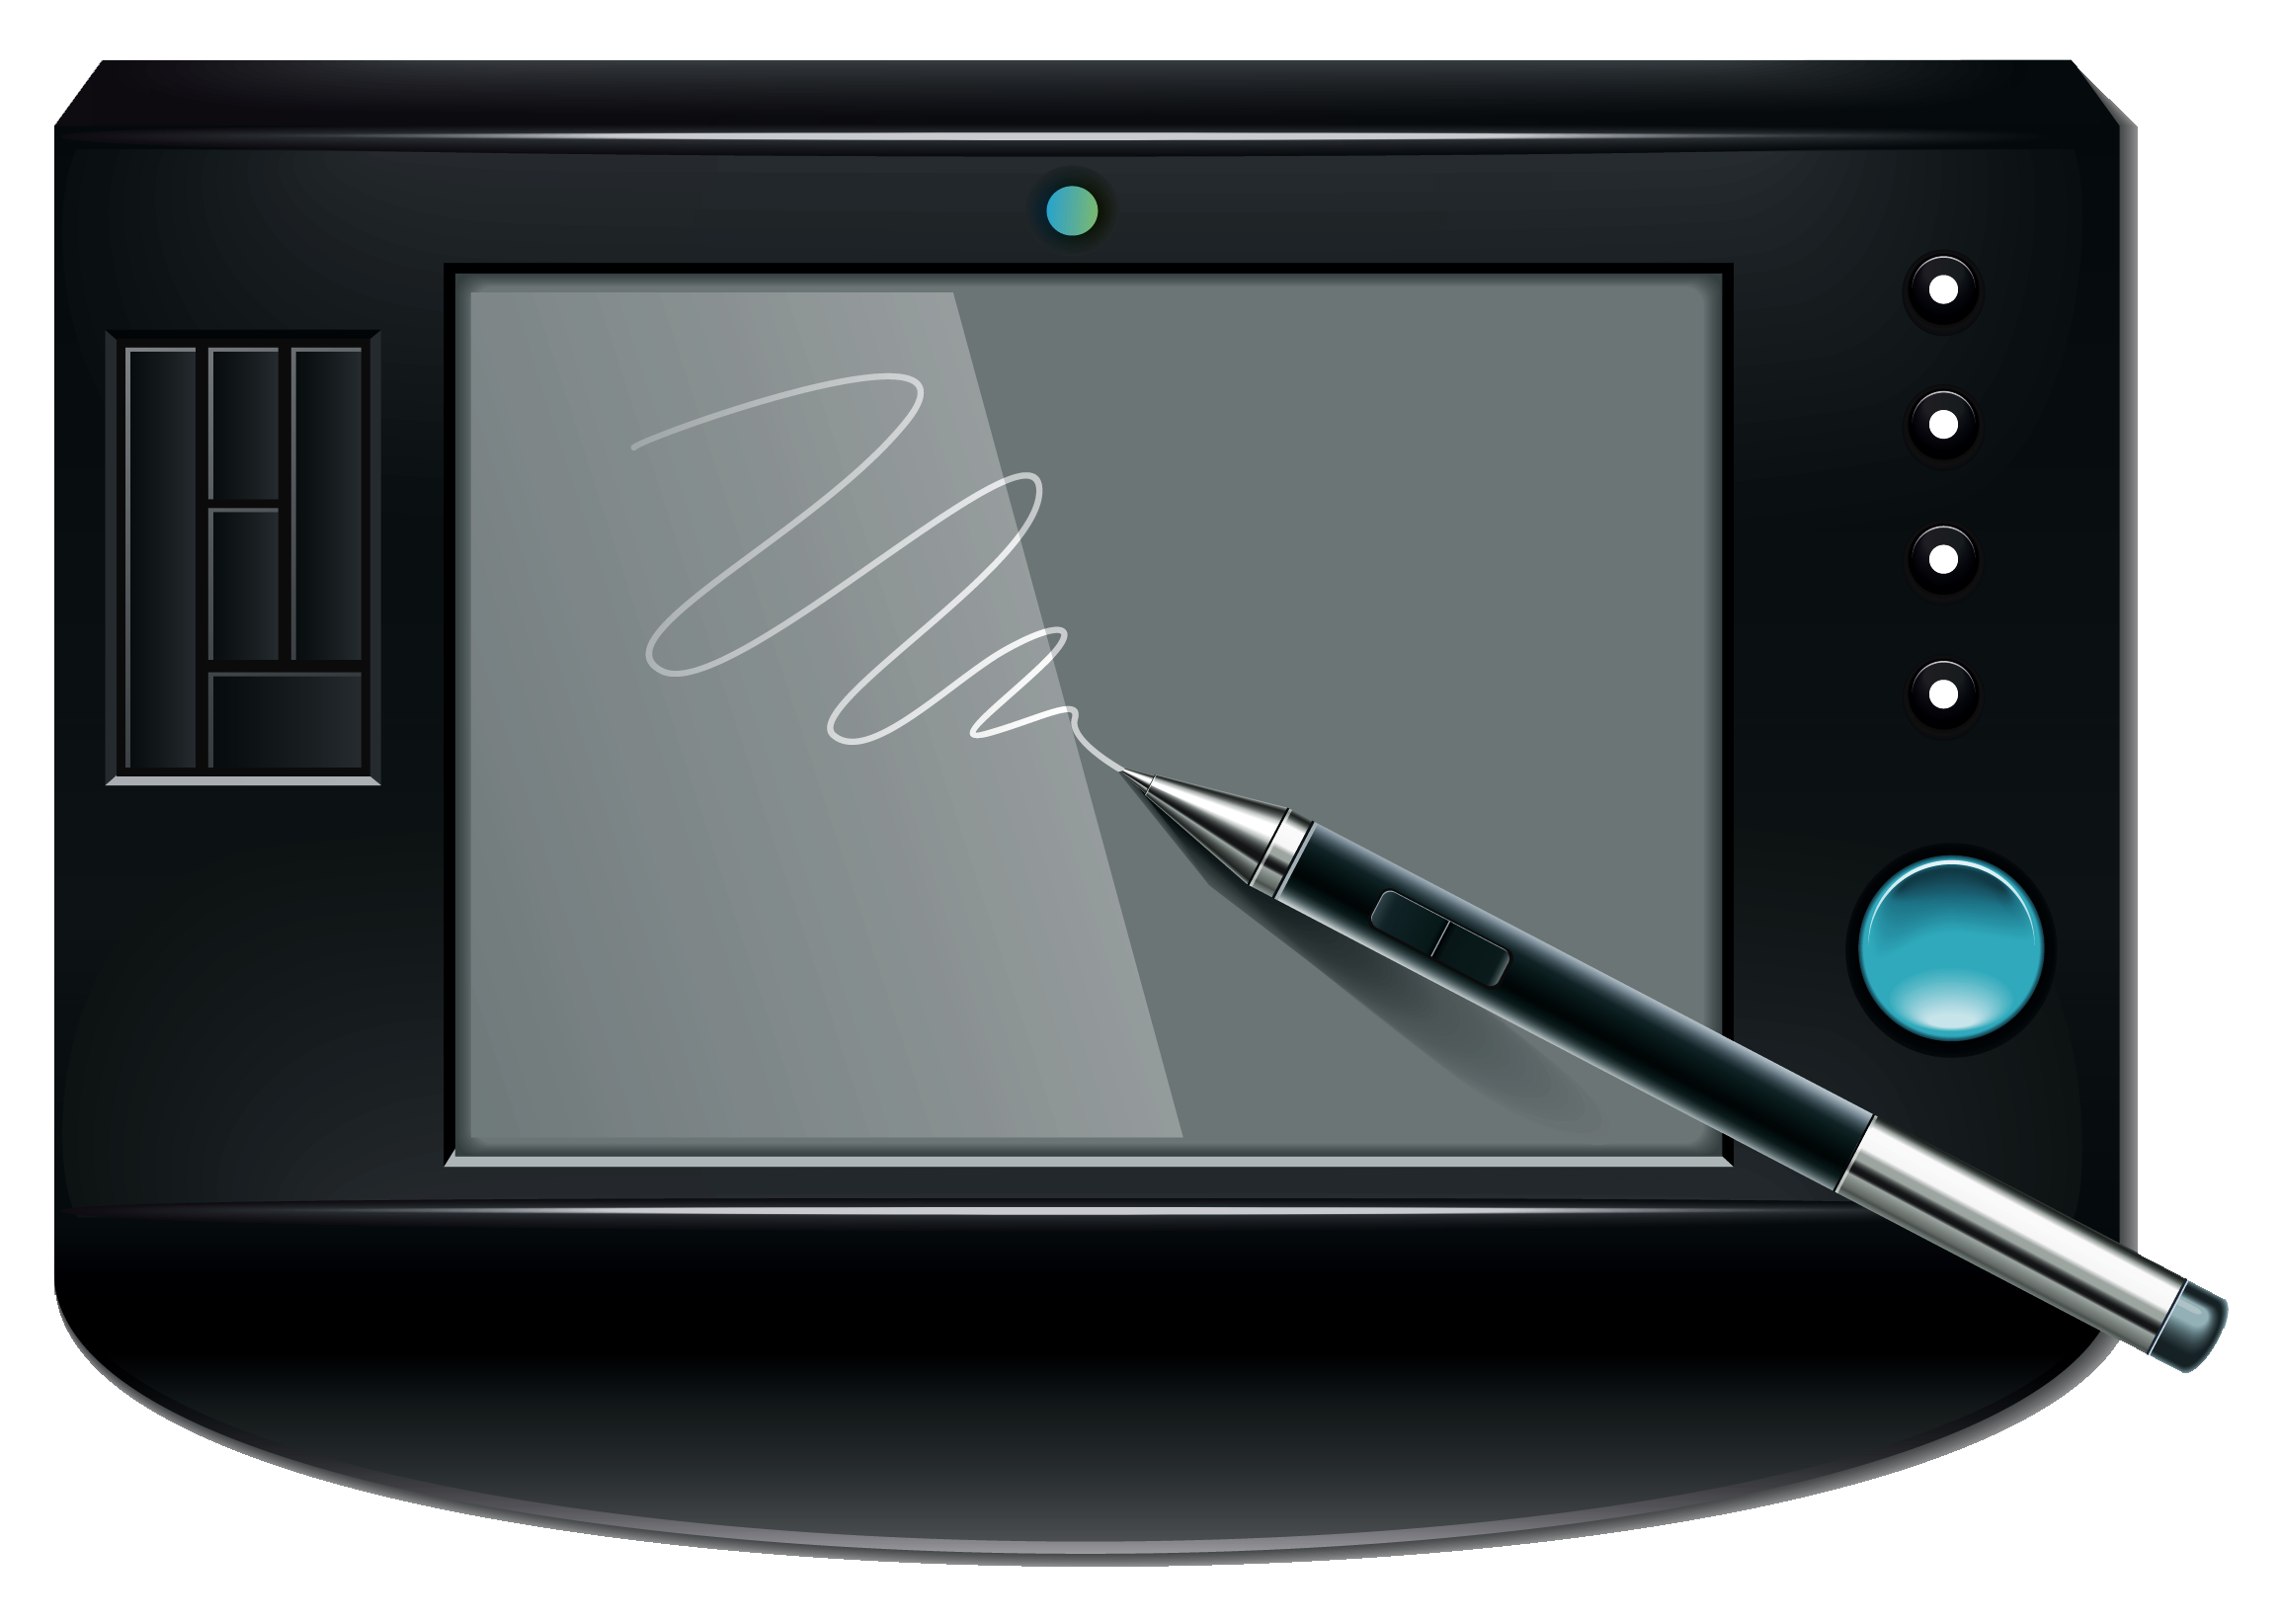 Tablet clipart png. Small graphics best web